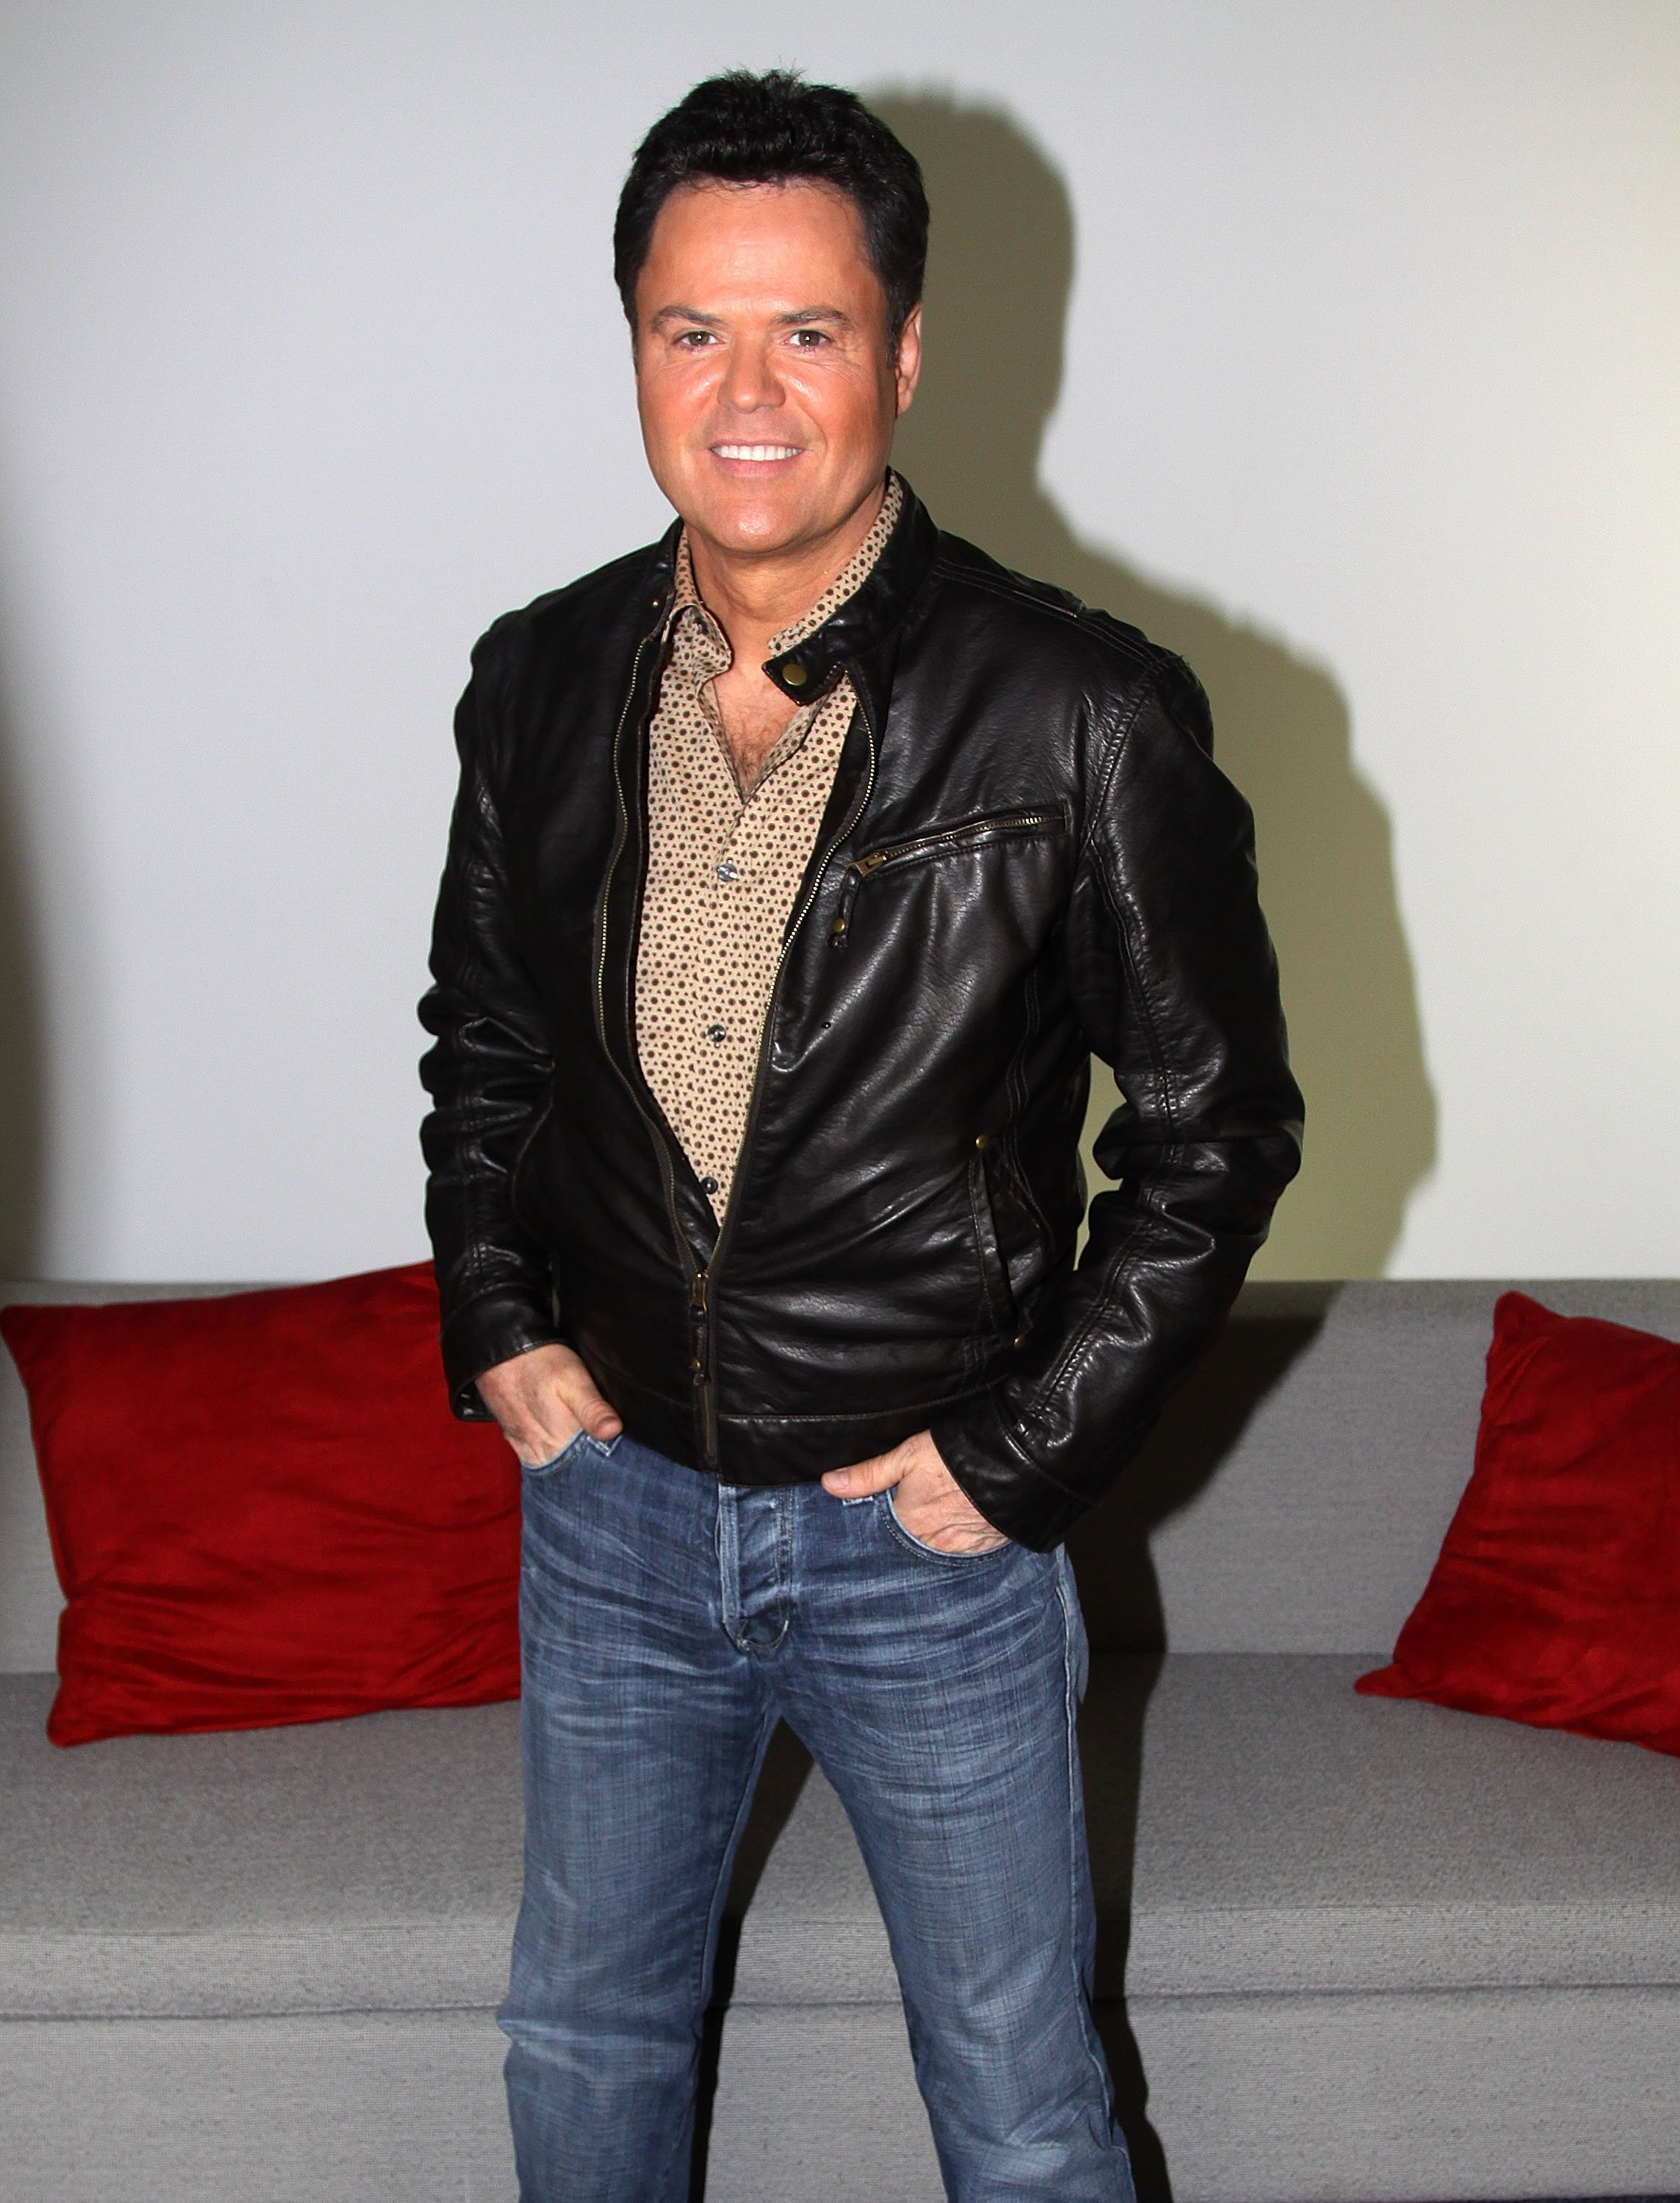 Donny Osmond on December 8, 2010 in New York City | Source: Getty Images